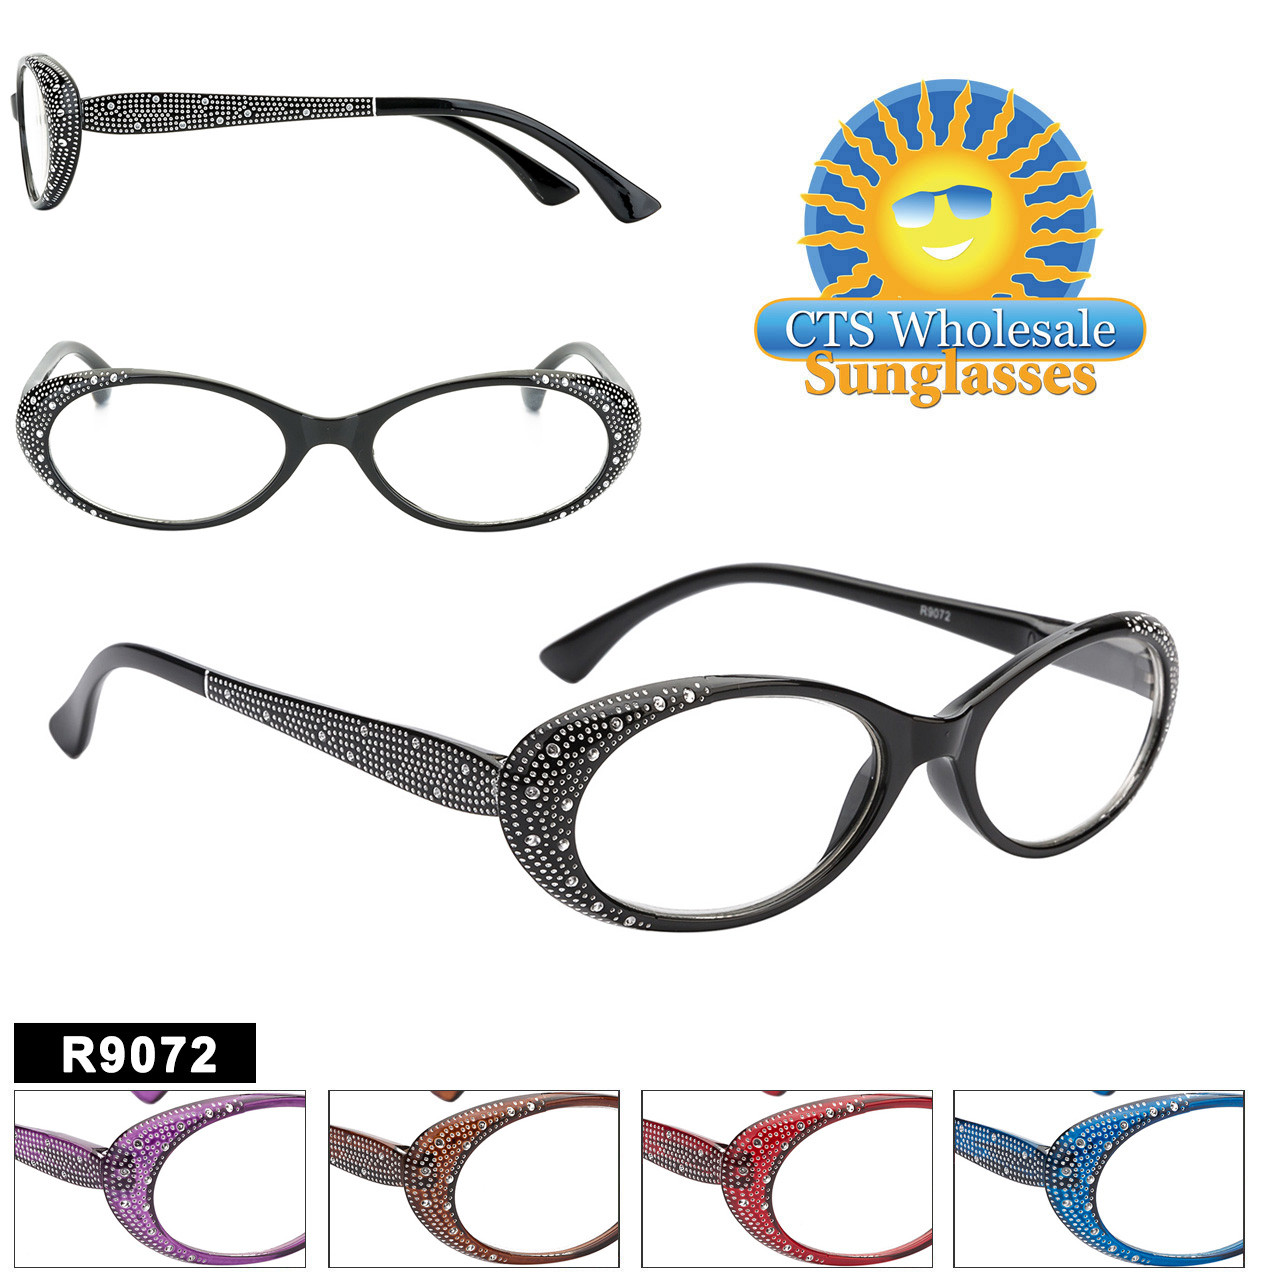 Women's Reading Glasses in Bulk - R9072